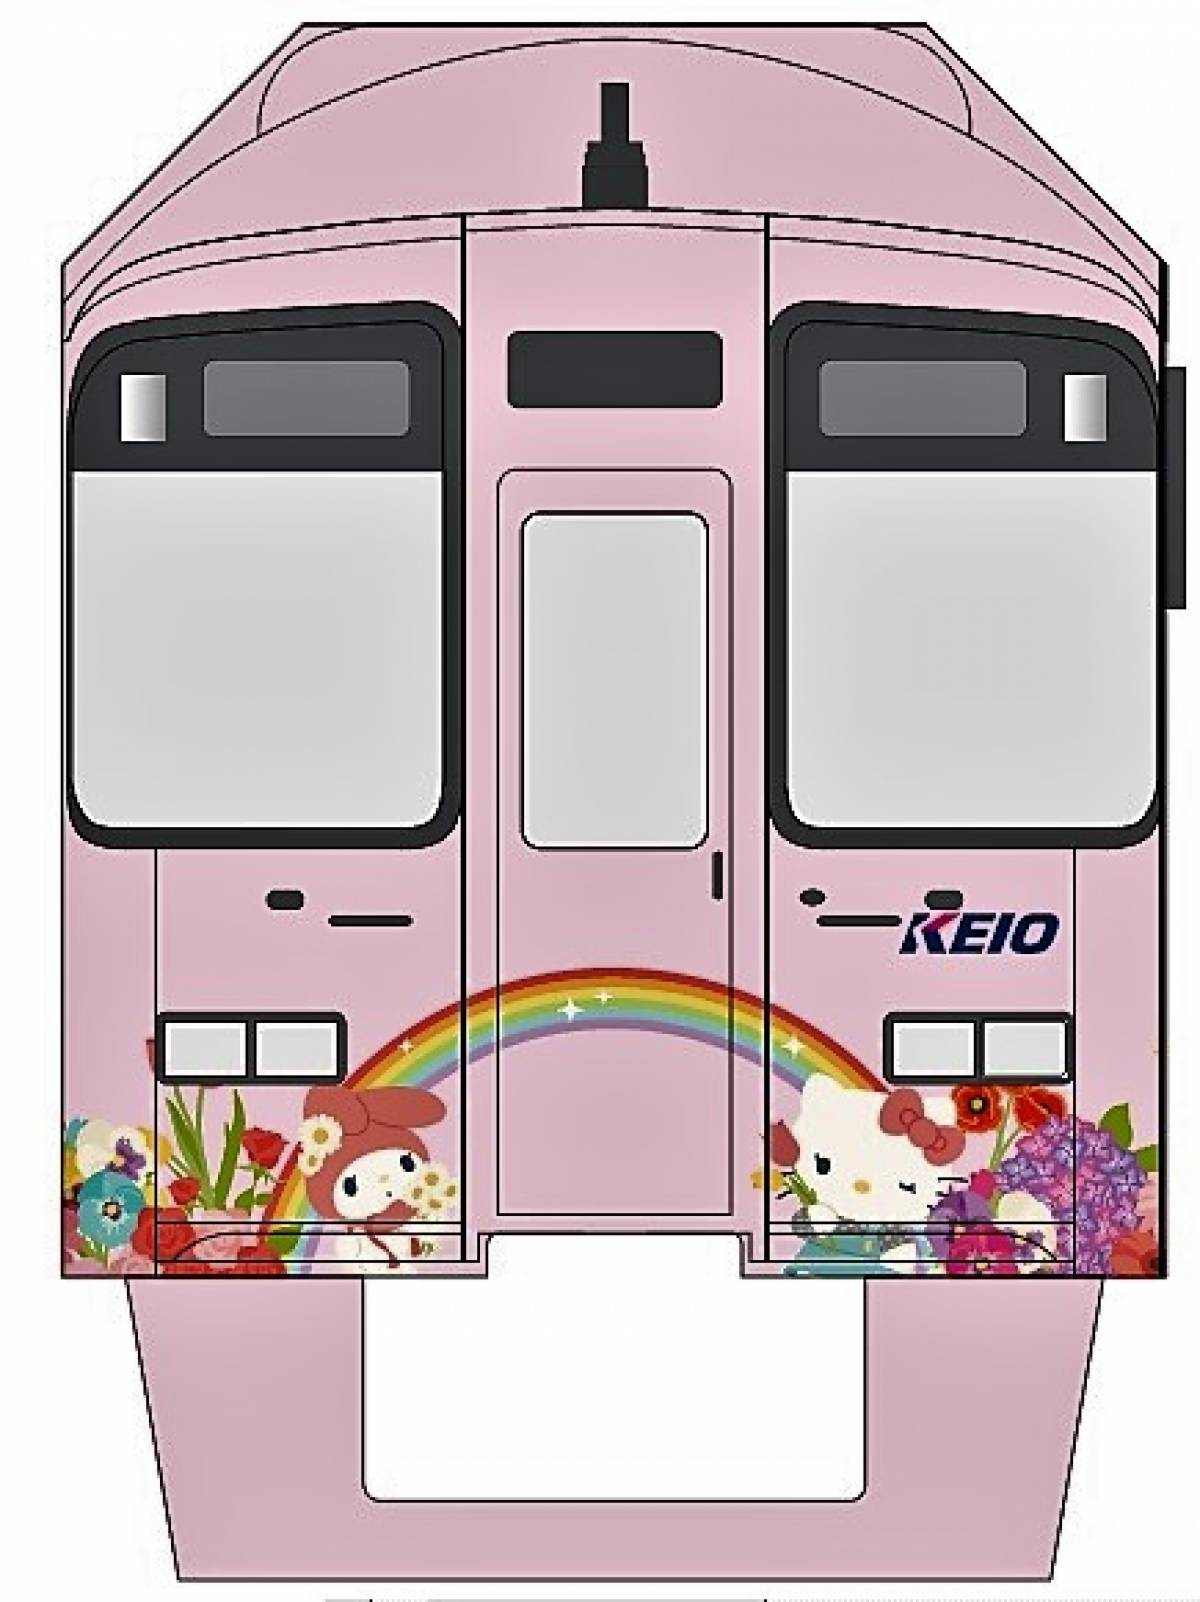 Hello Kitty Land Tokyo Unveils First Keio Line Hello Kitty Trains in Time for New